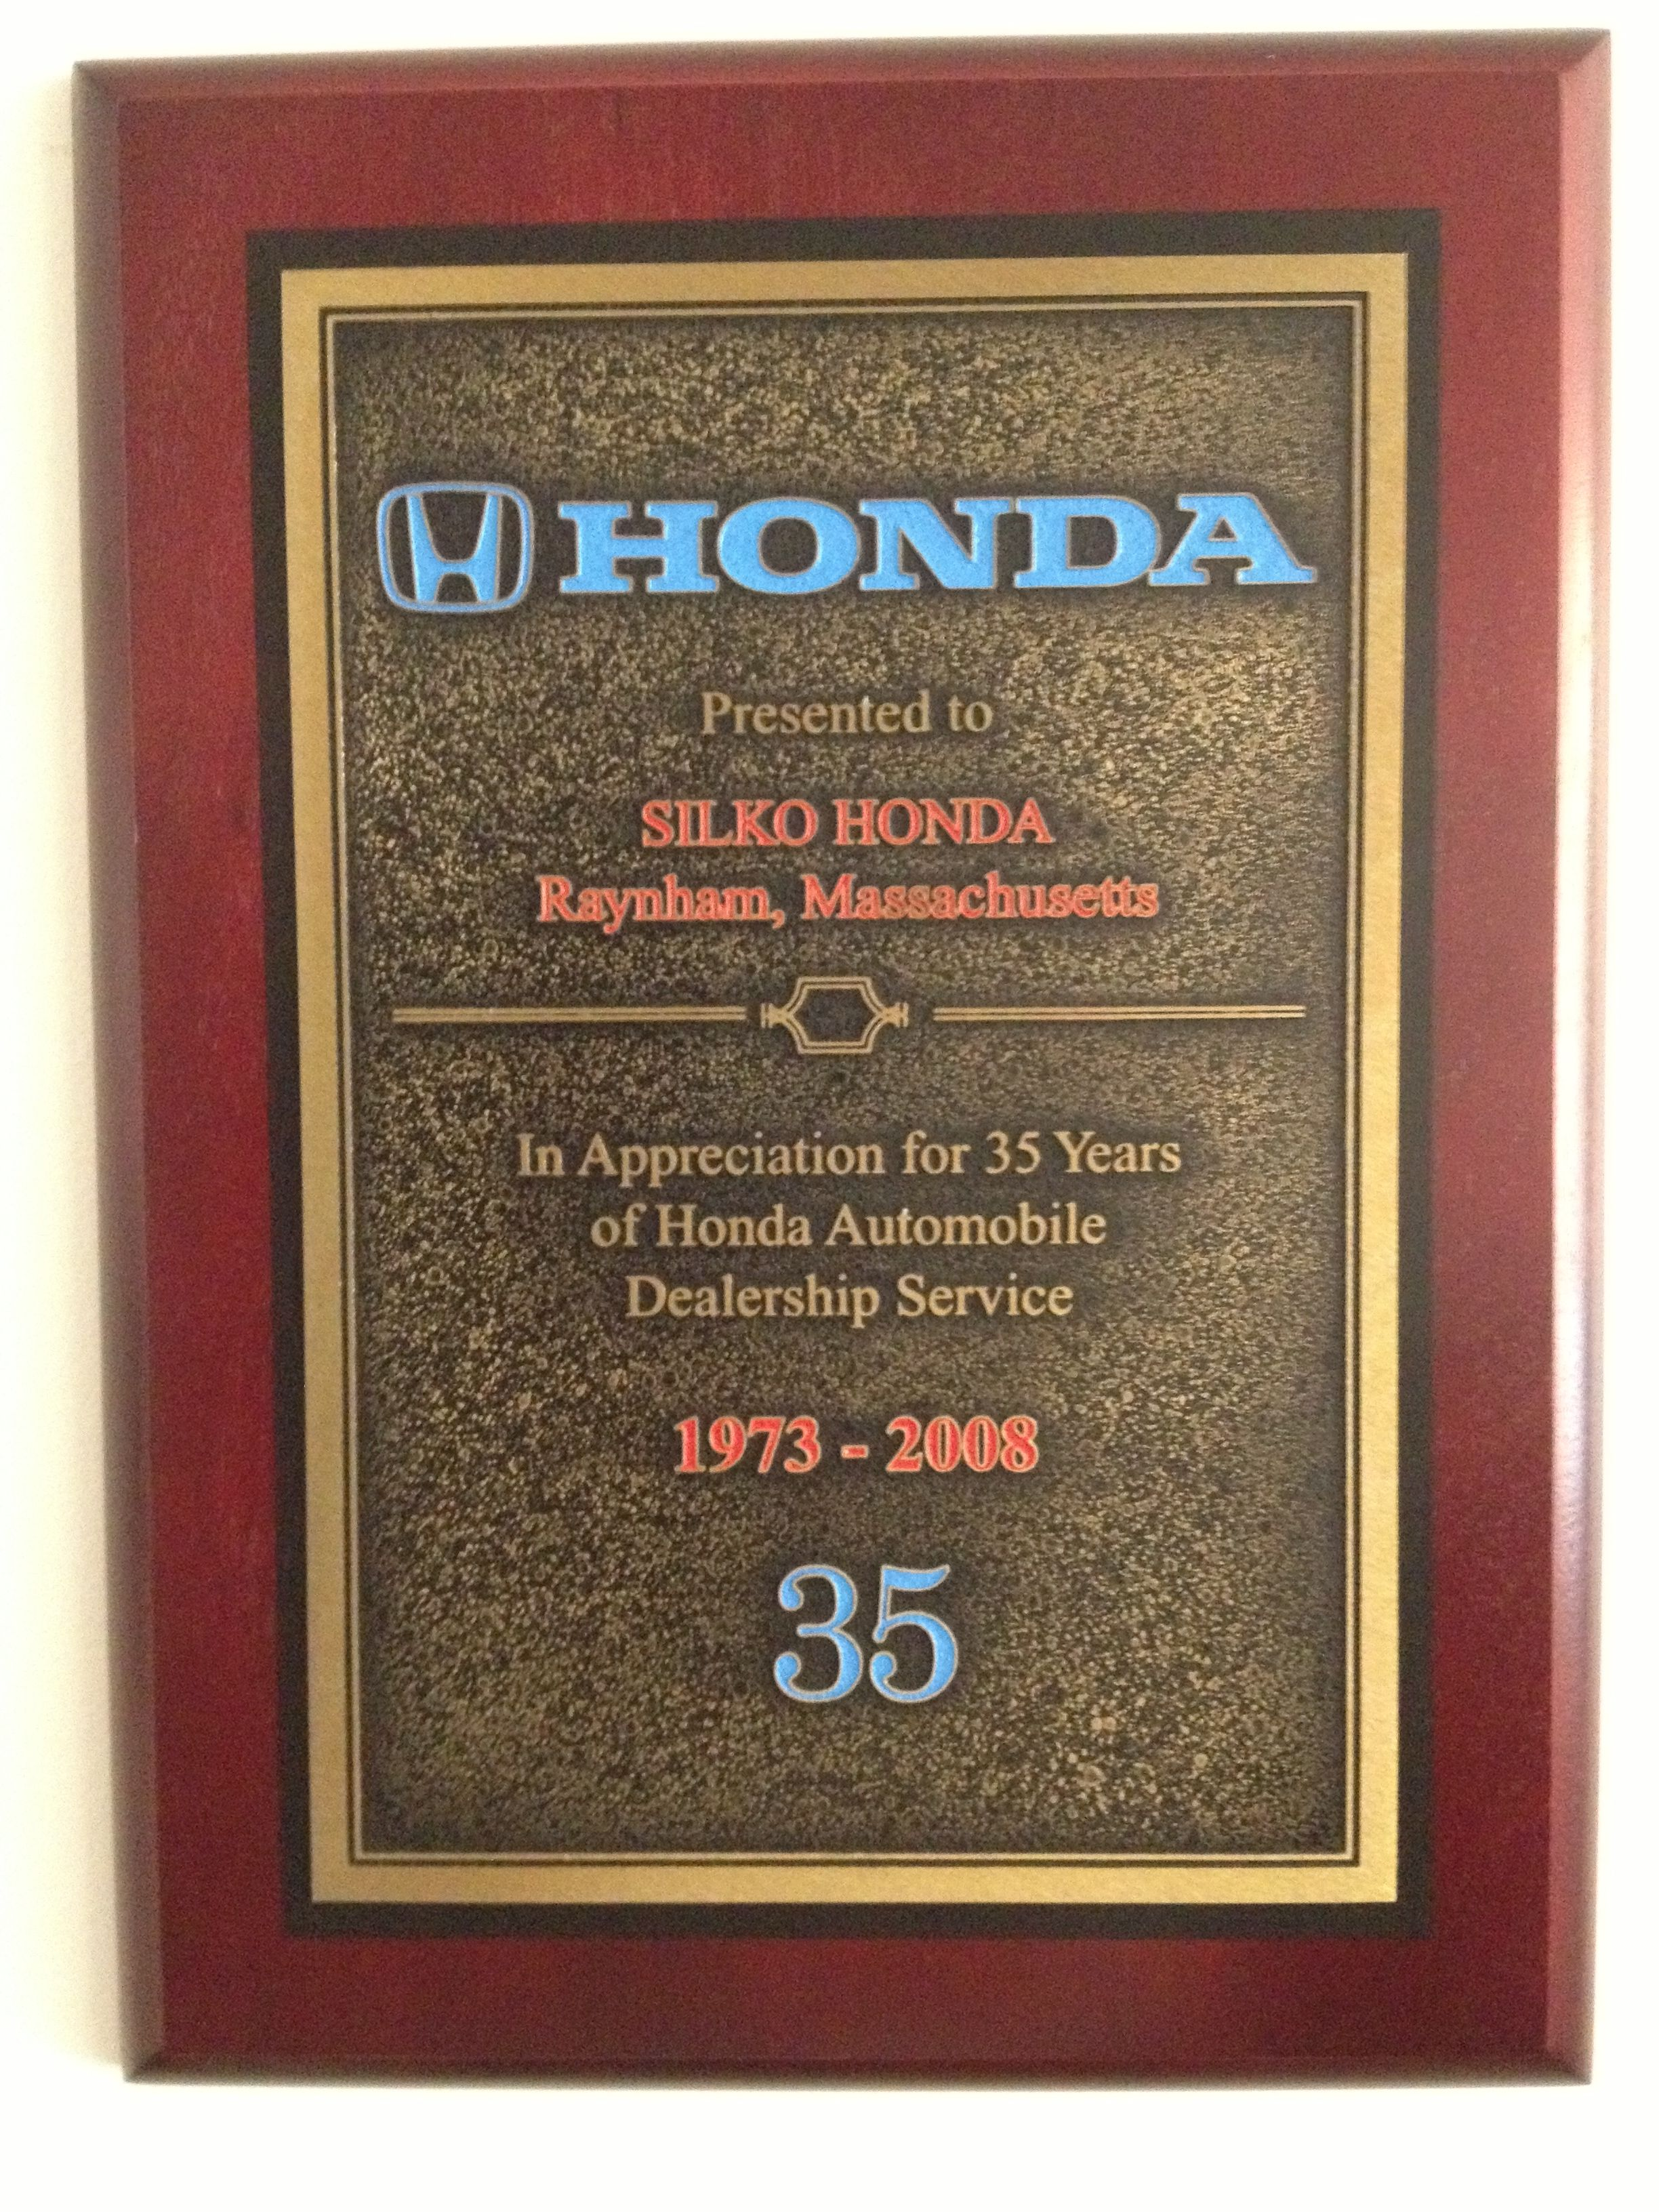 1973-2008: This award was presented in 2008 in appreciation for 35 years of Honda Automobile Dealership Service! #silkohonda #greatservice